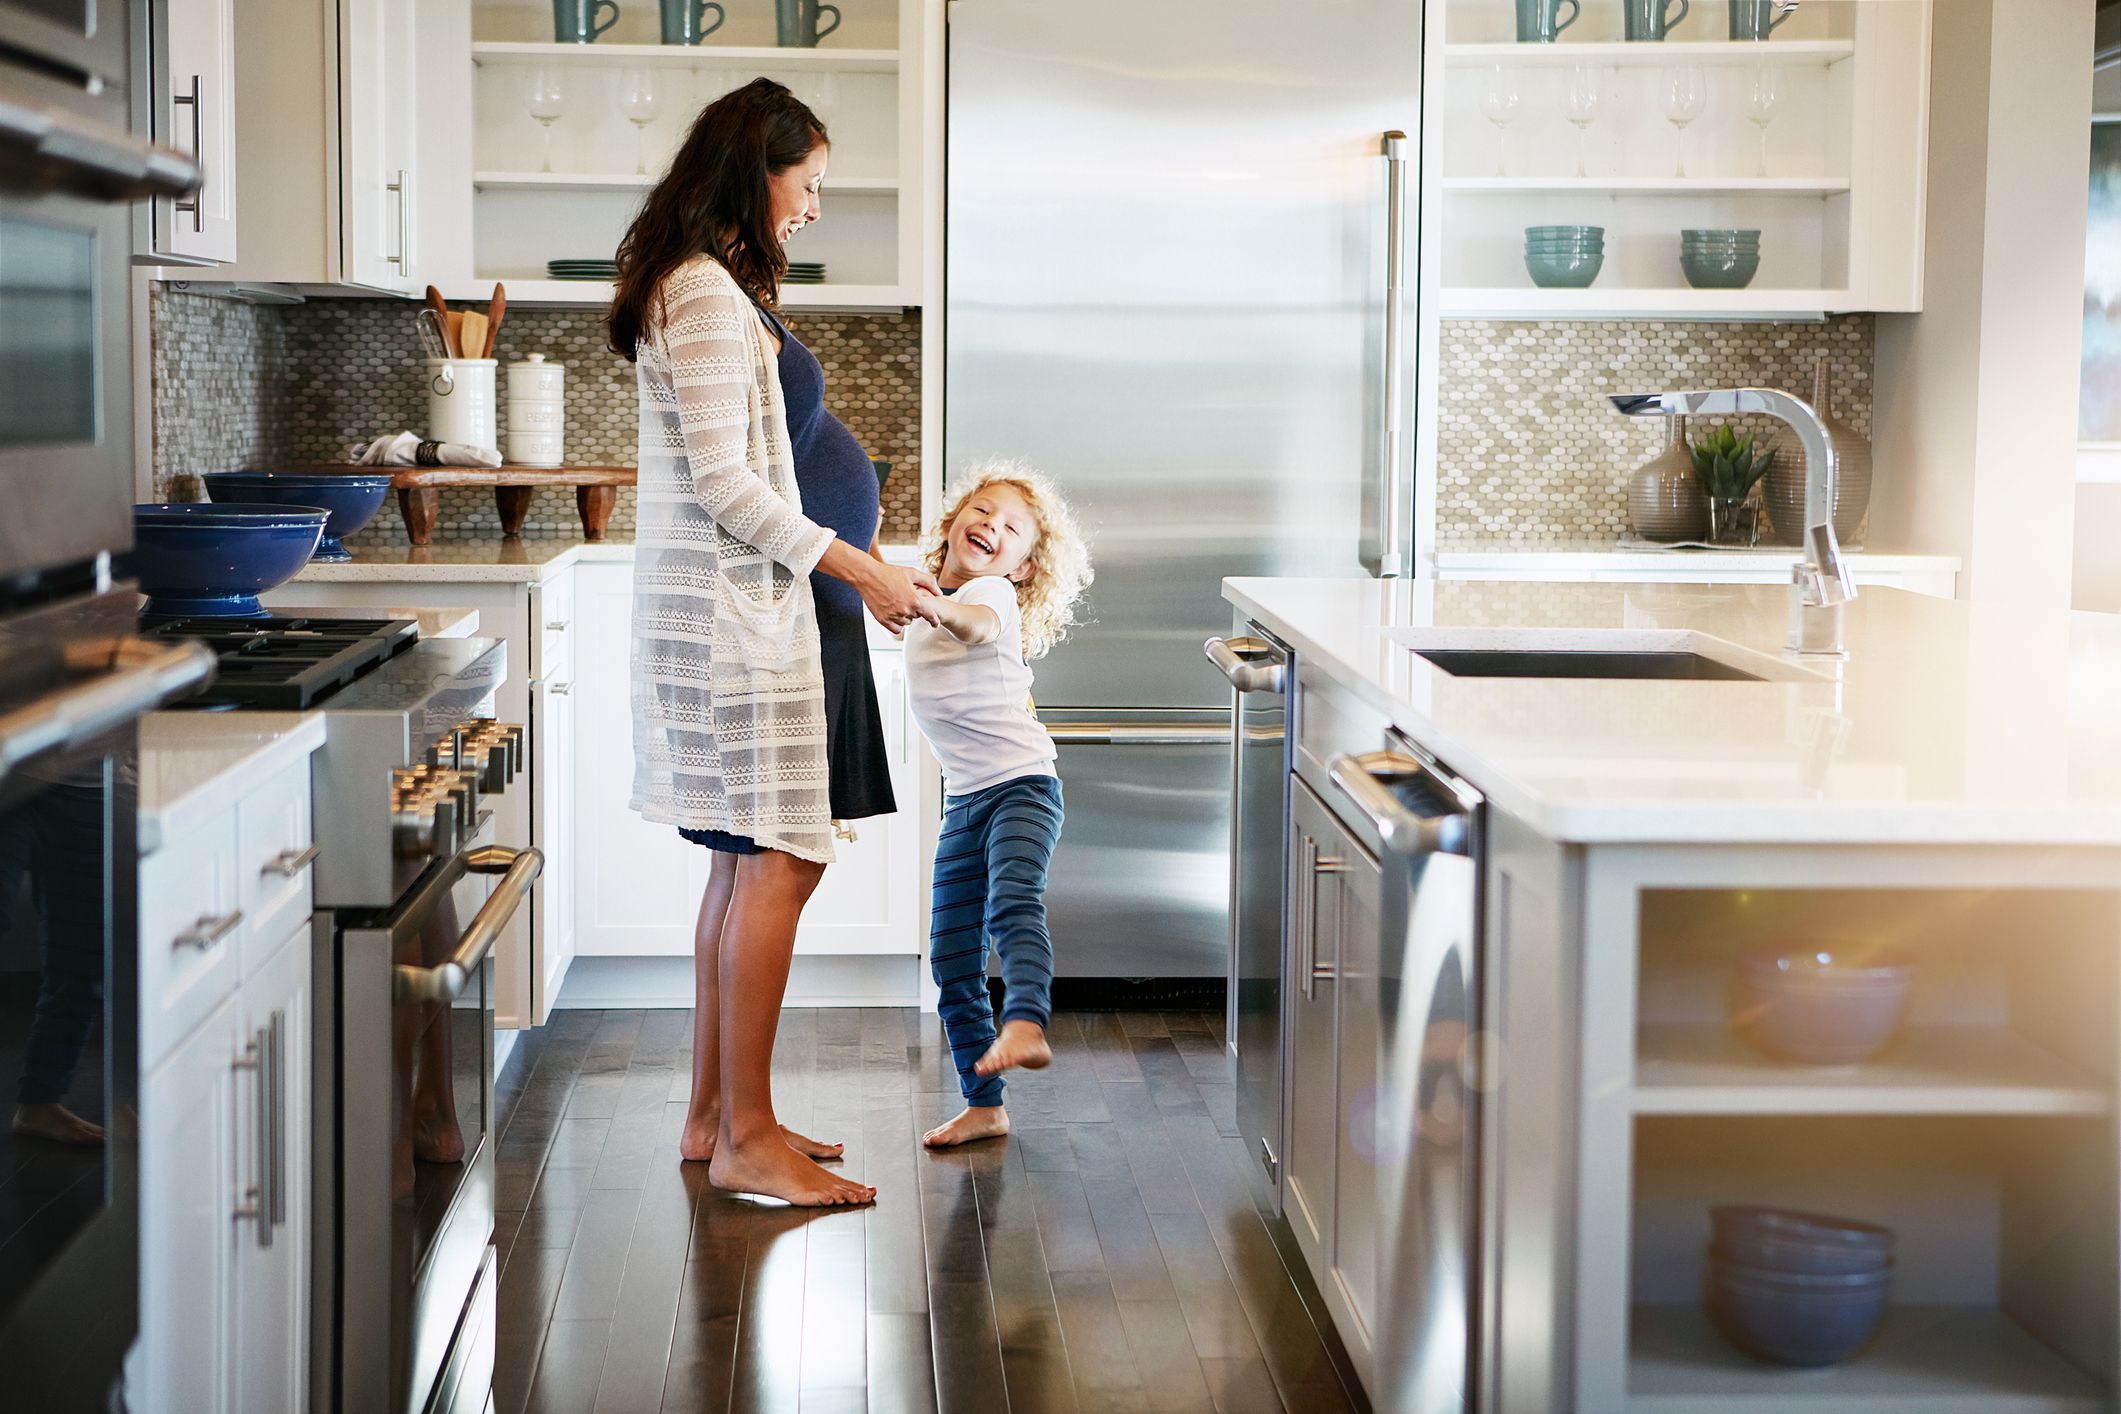 15 Simple Things You Can Do For a Safer Home